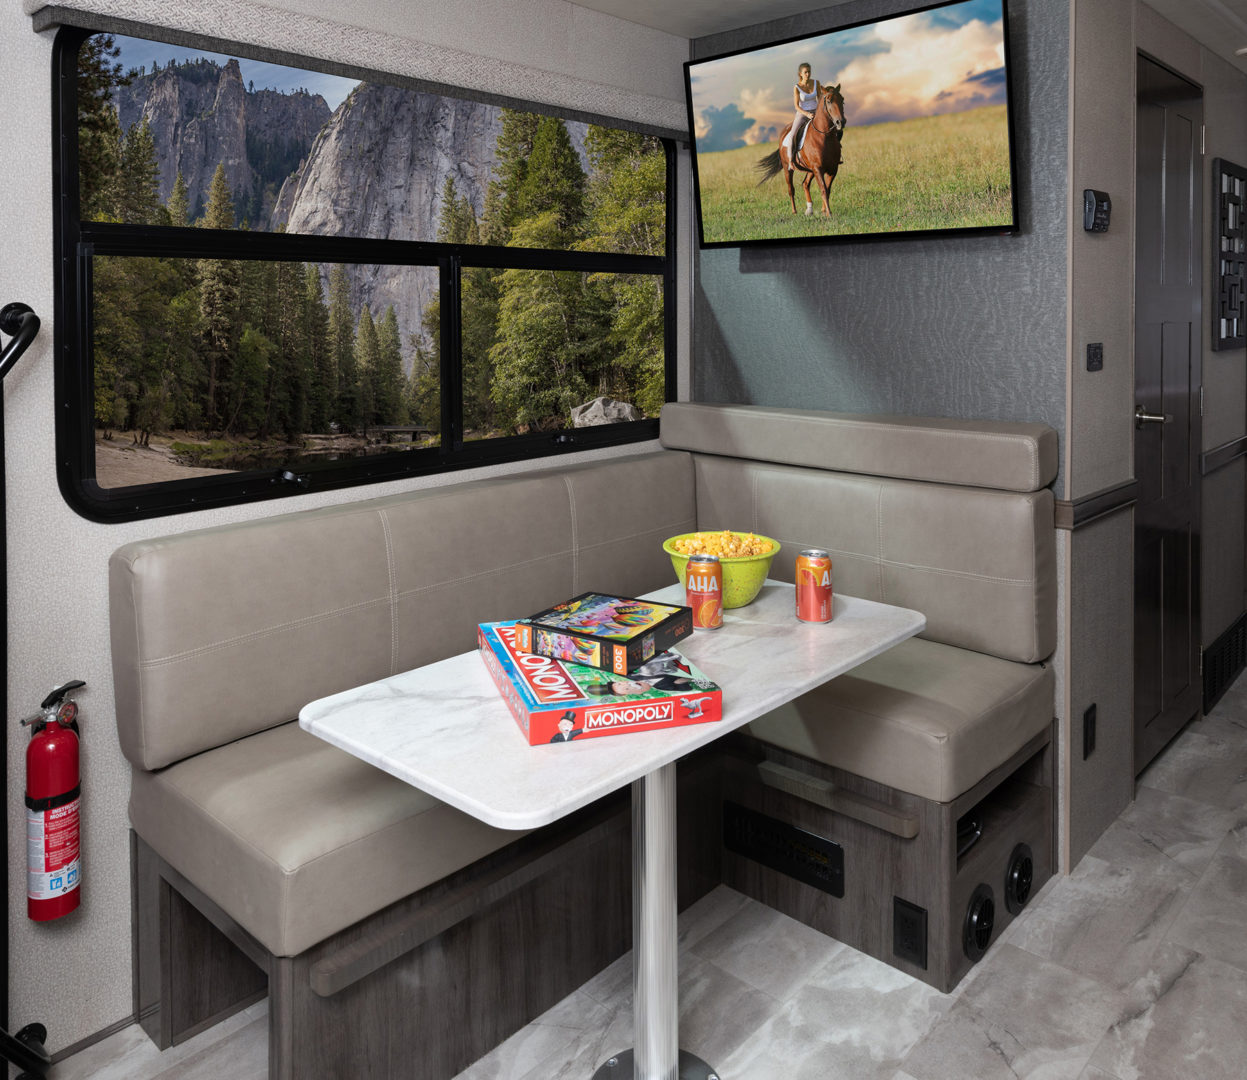 2 Dinette Admiral29 M Moonscape whiswind514 tv1 MY21